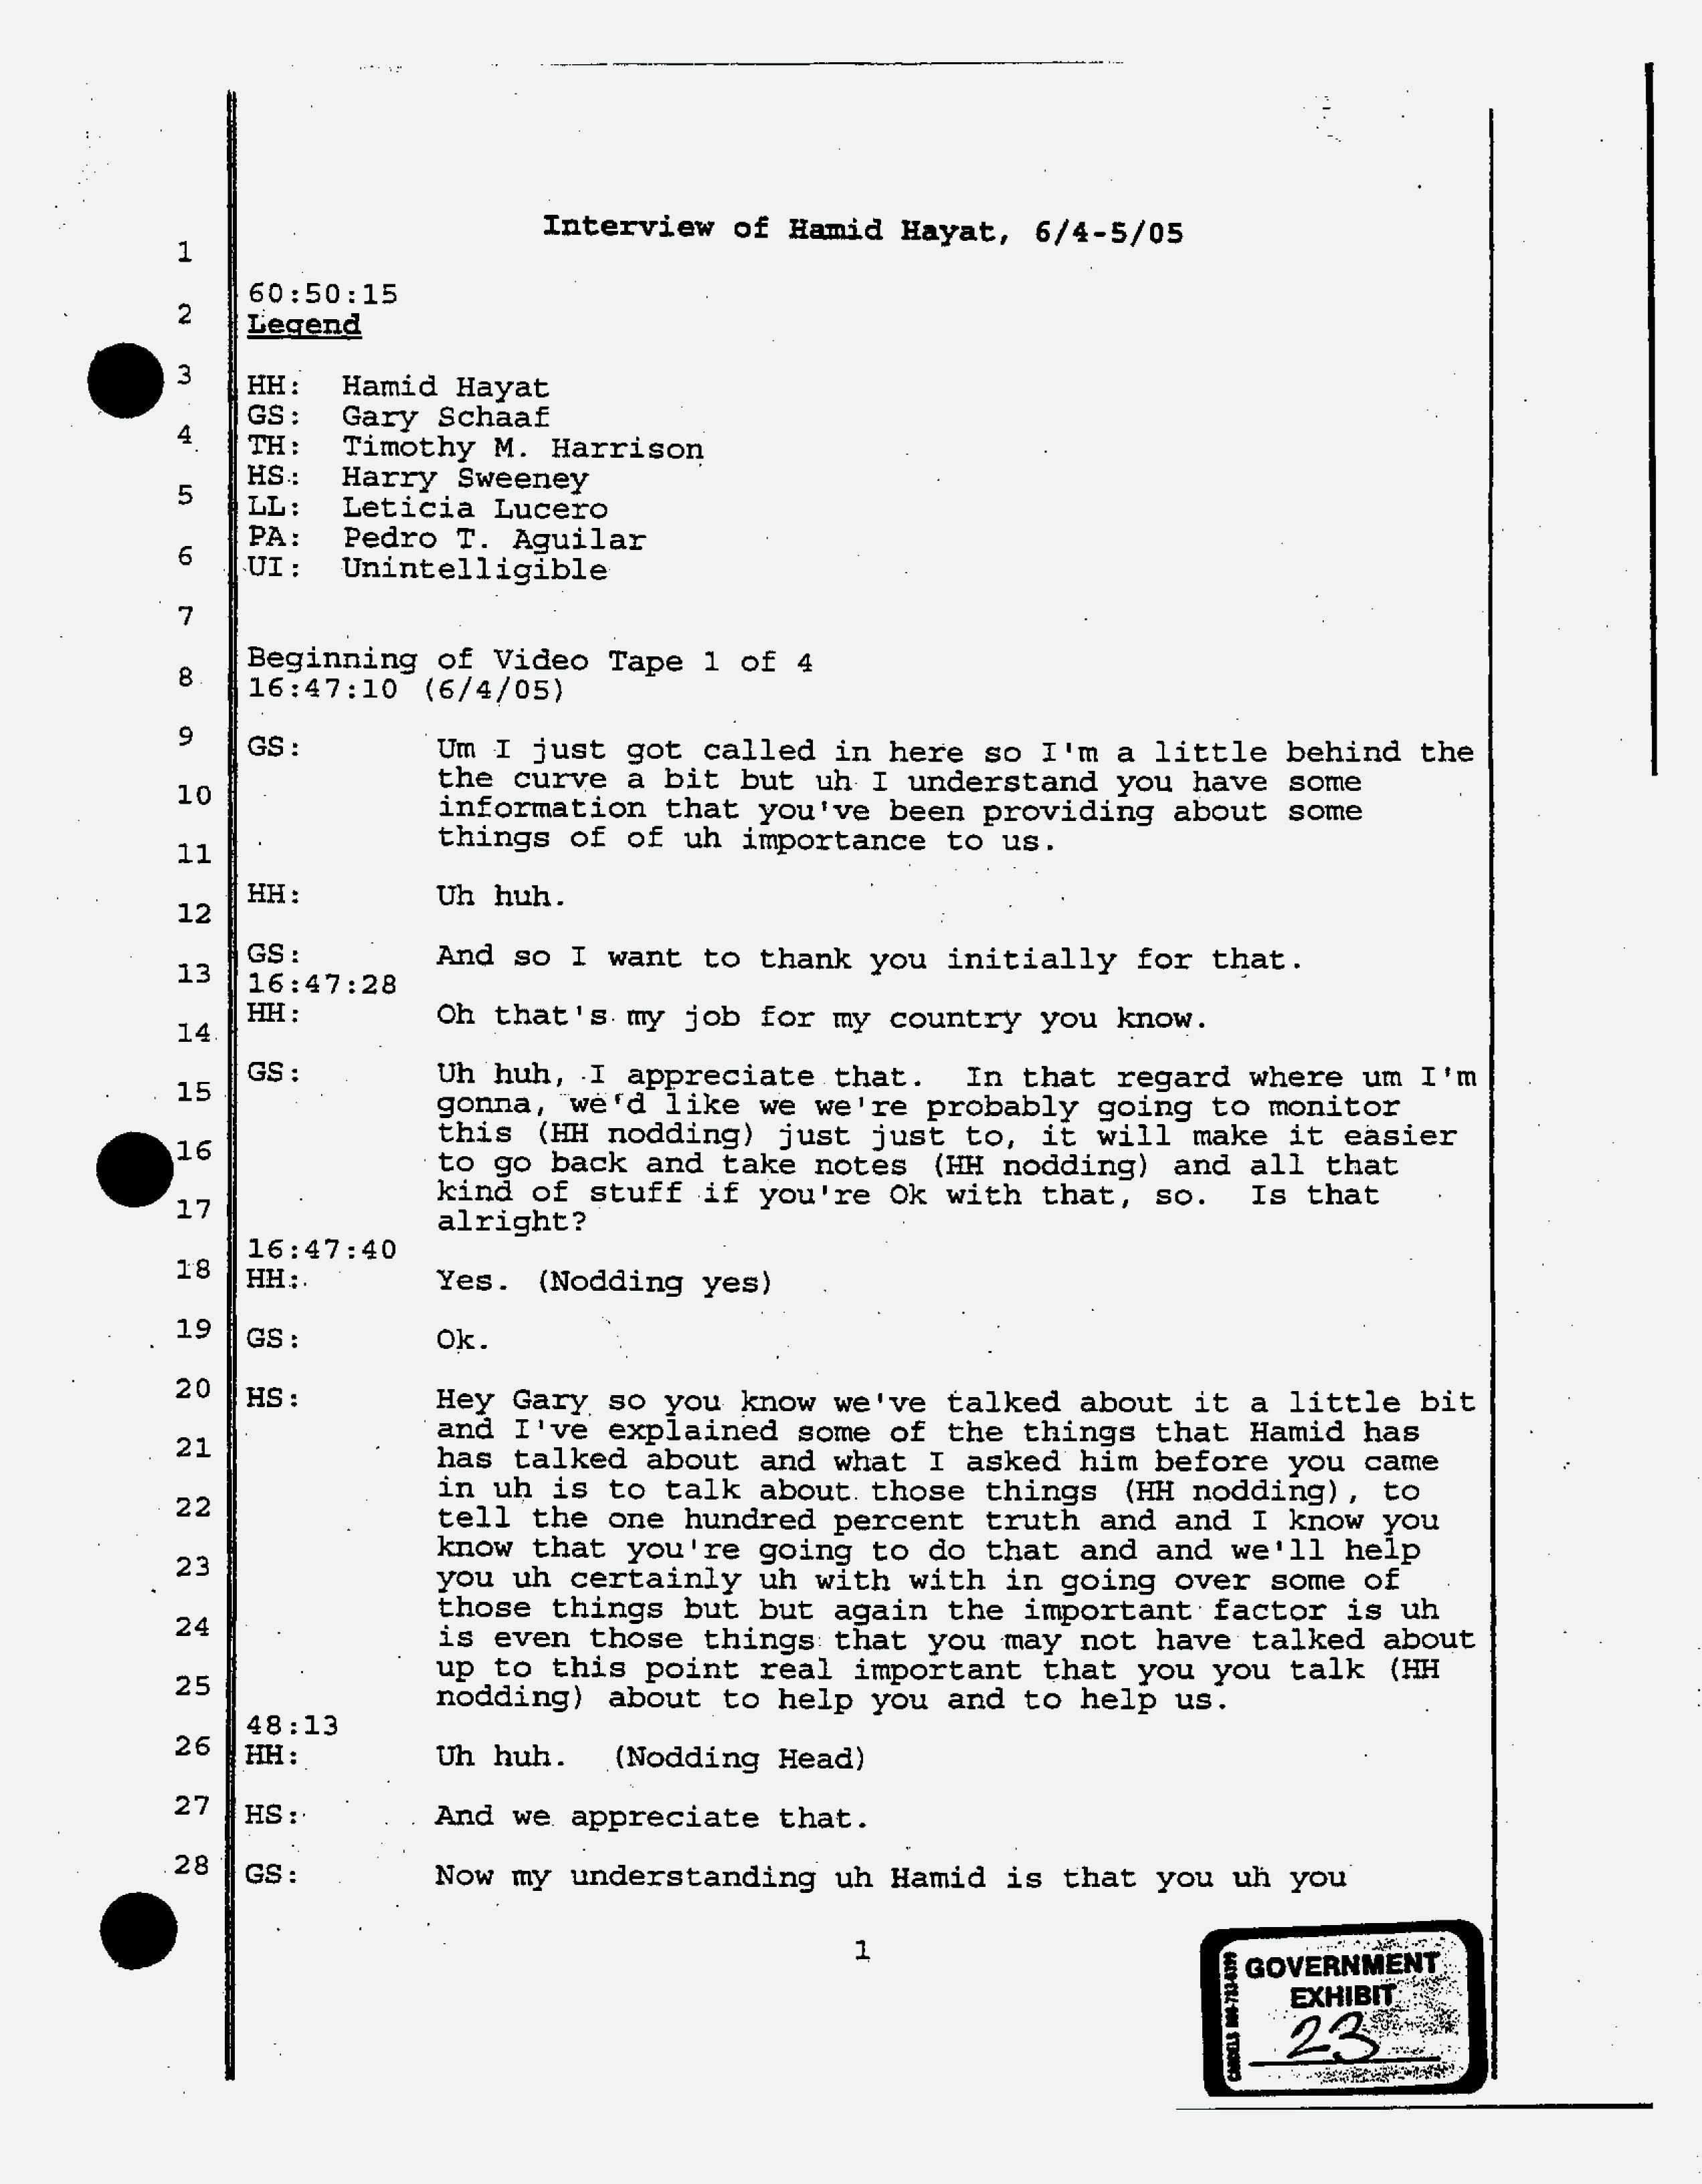 FBIHamidHayatInterrogation_TranscriptTape1and2-2-tint